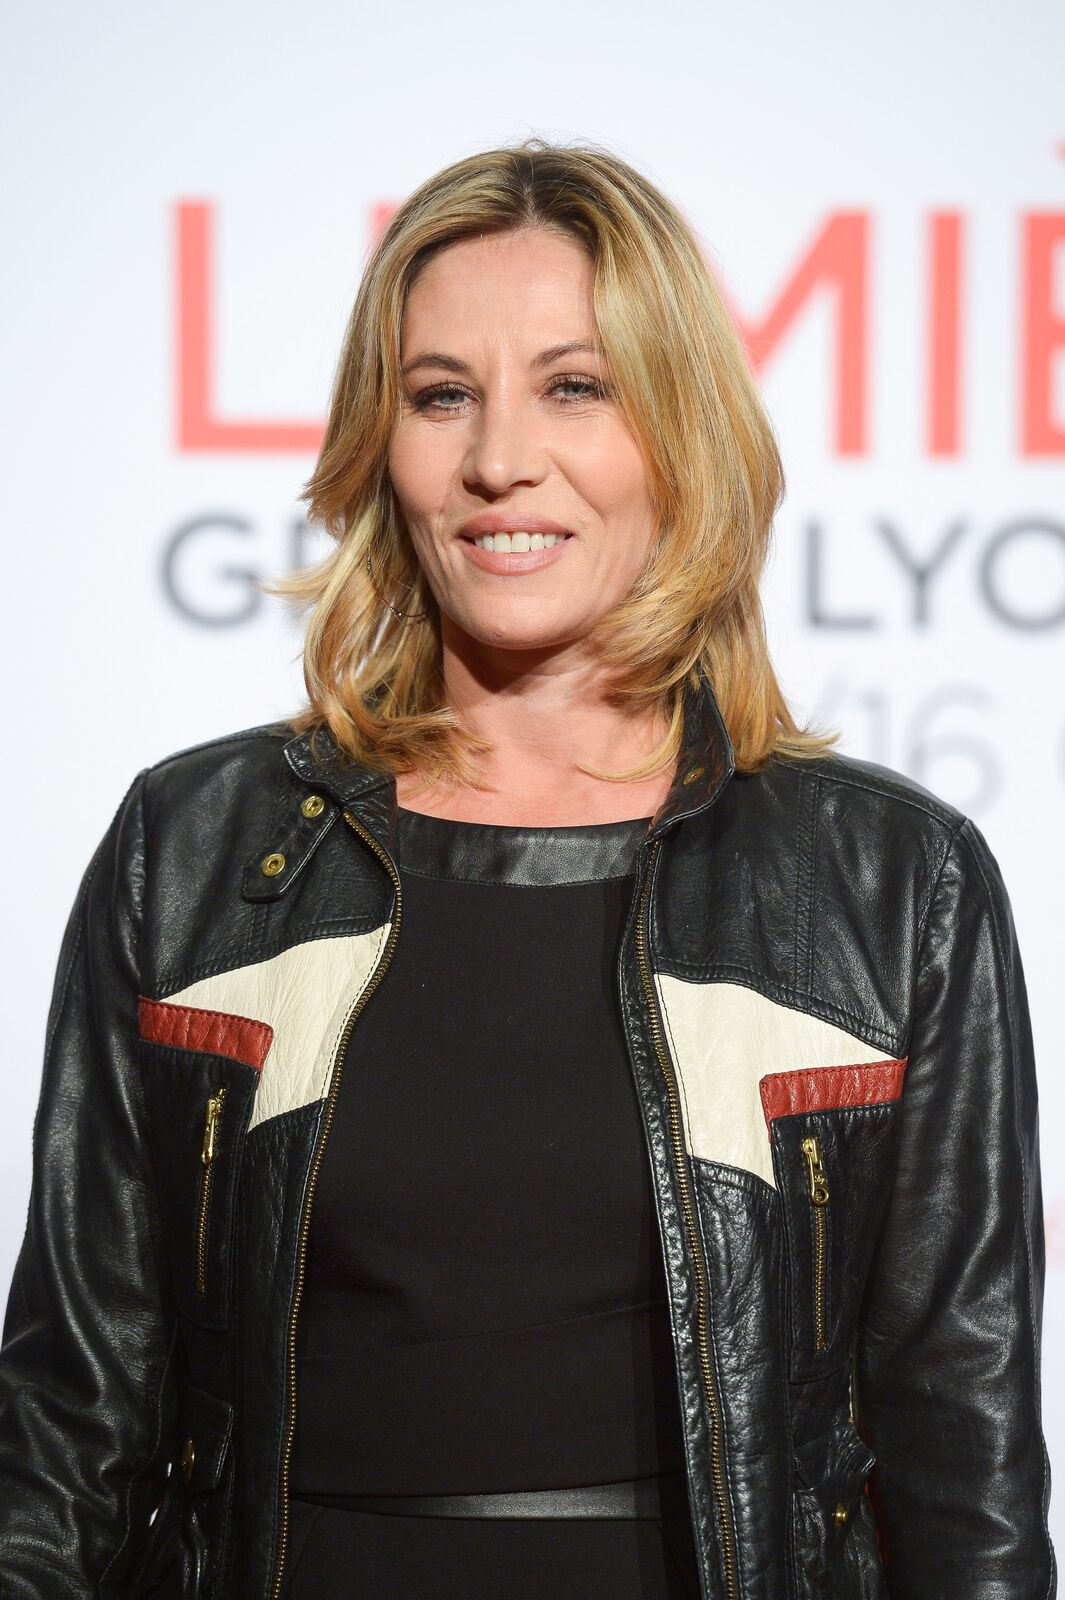 La comédienne Mathilde Seigner avec une veste cuire. | Photo : GettyImage